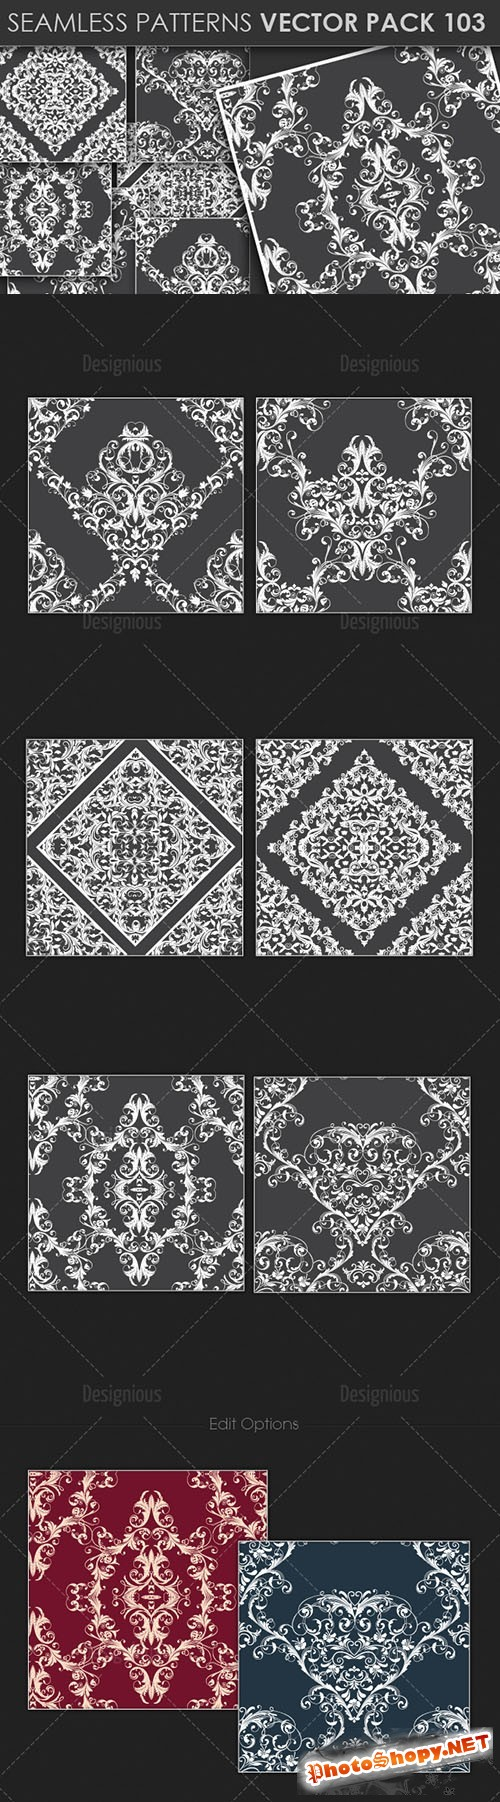 Seamless Patterns Vector Pack 103